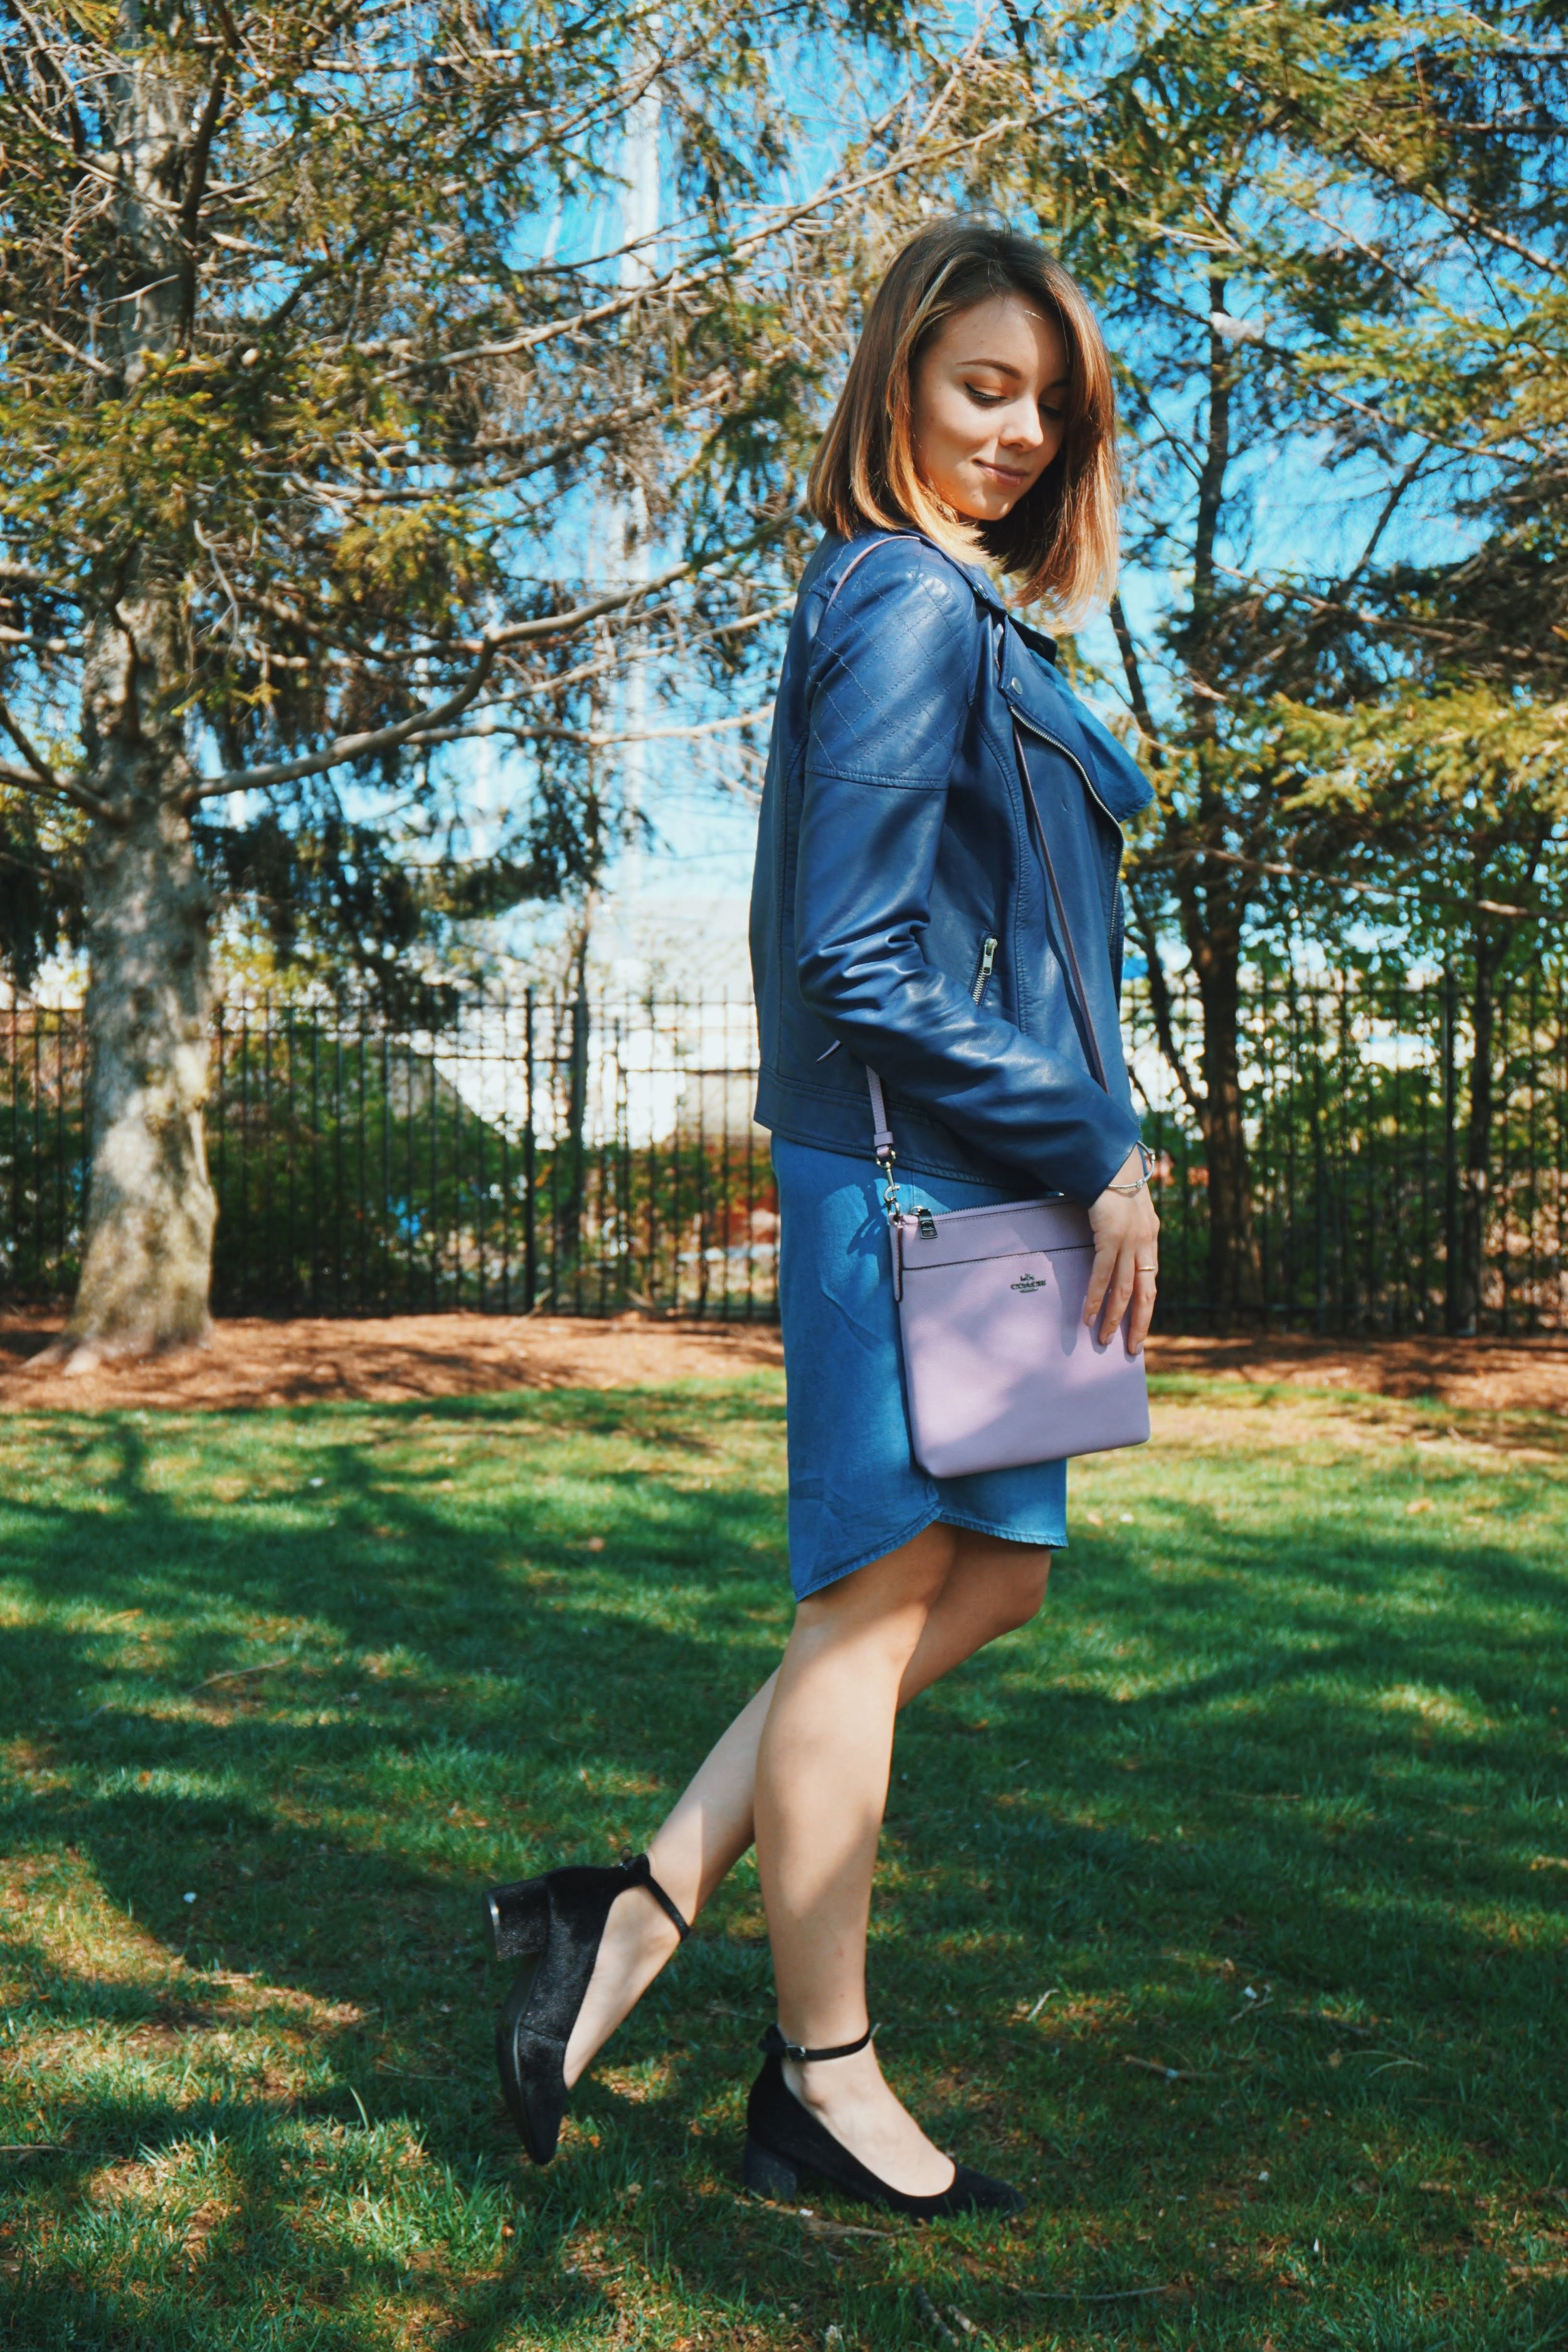 A girl standing on a grass, wearin a denim blue dress, blue faux leather jacket, lilac Coach purse, and black Unisa pumps.